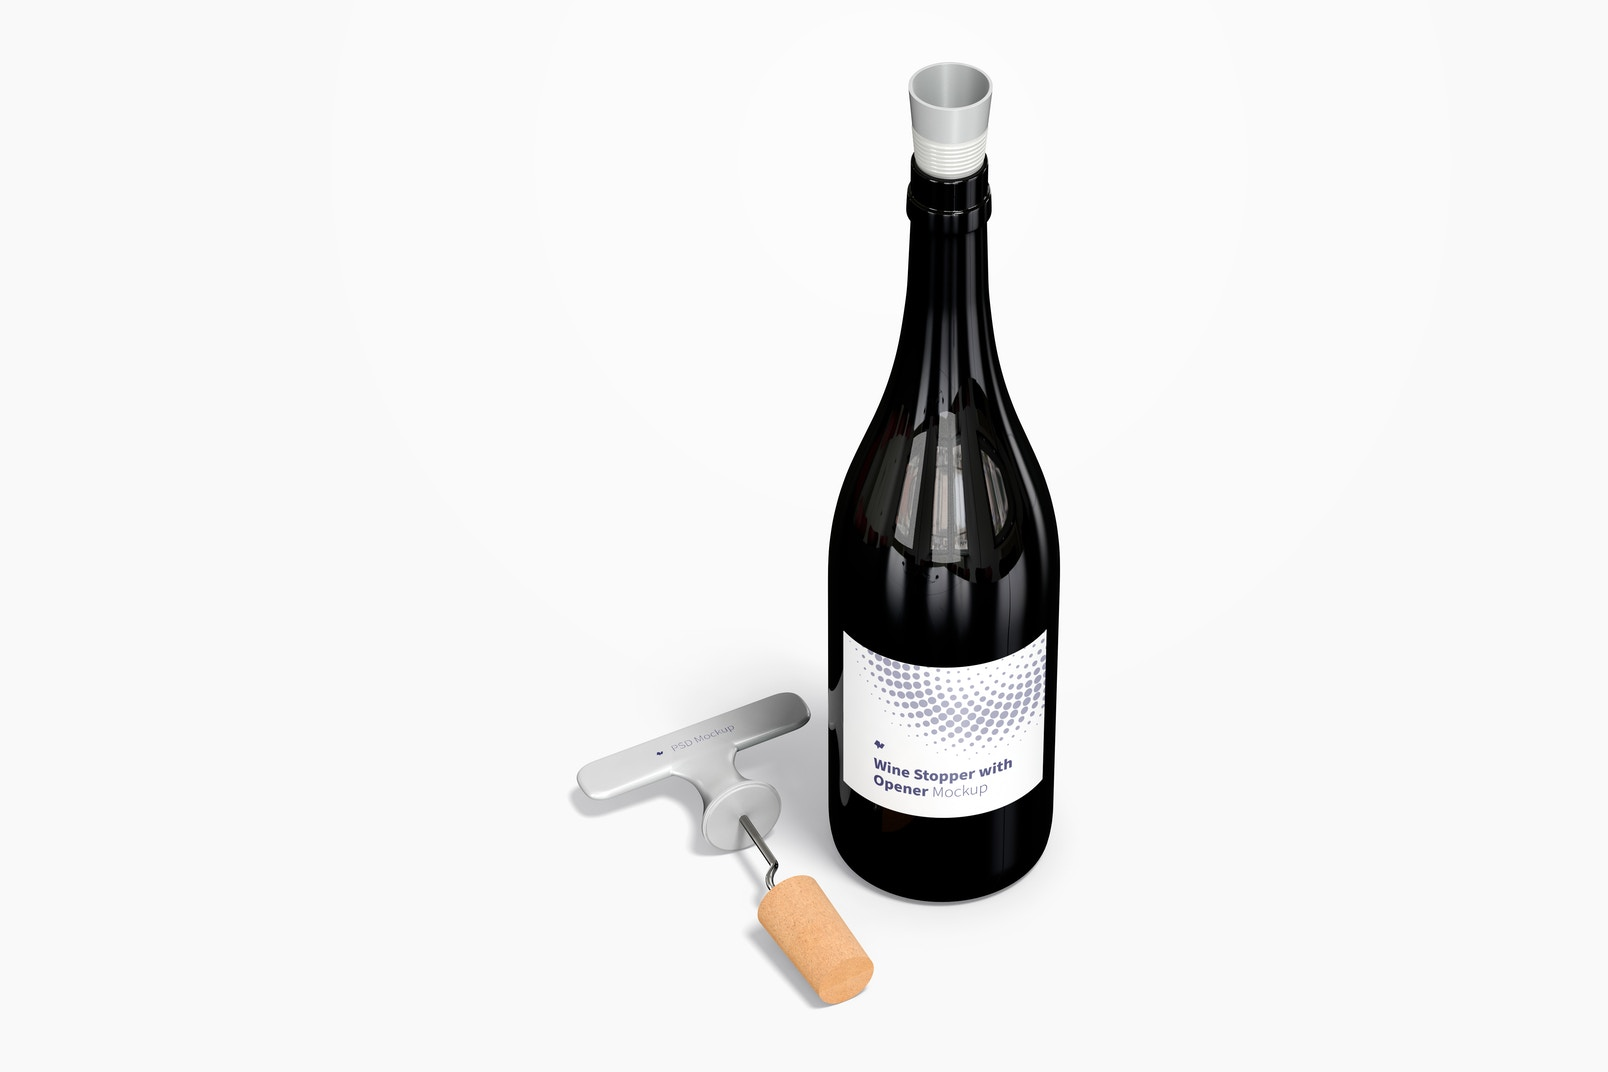 Wine Stopper with Opener and Bottle Mockup